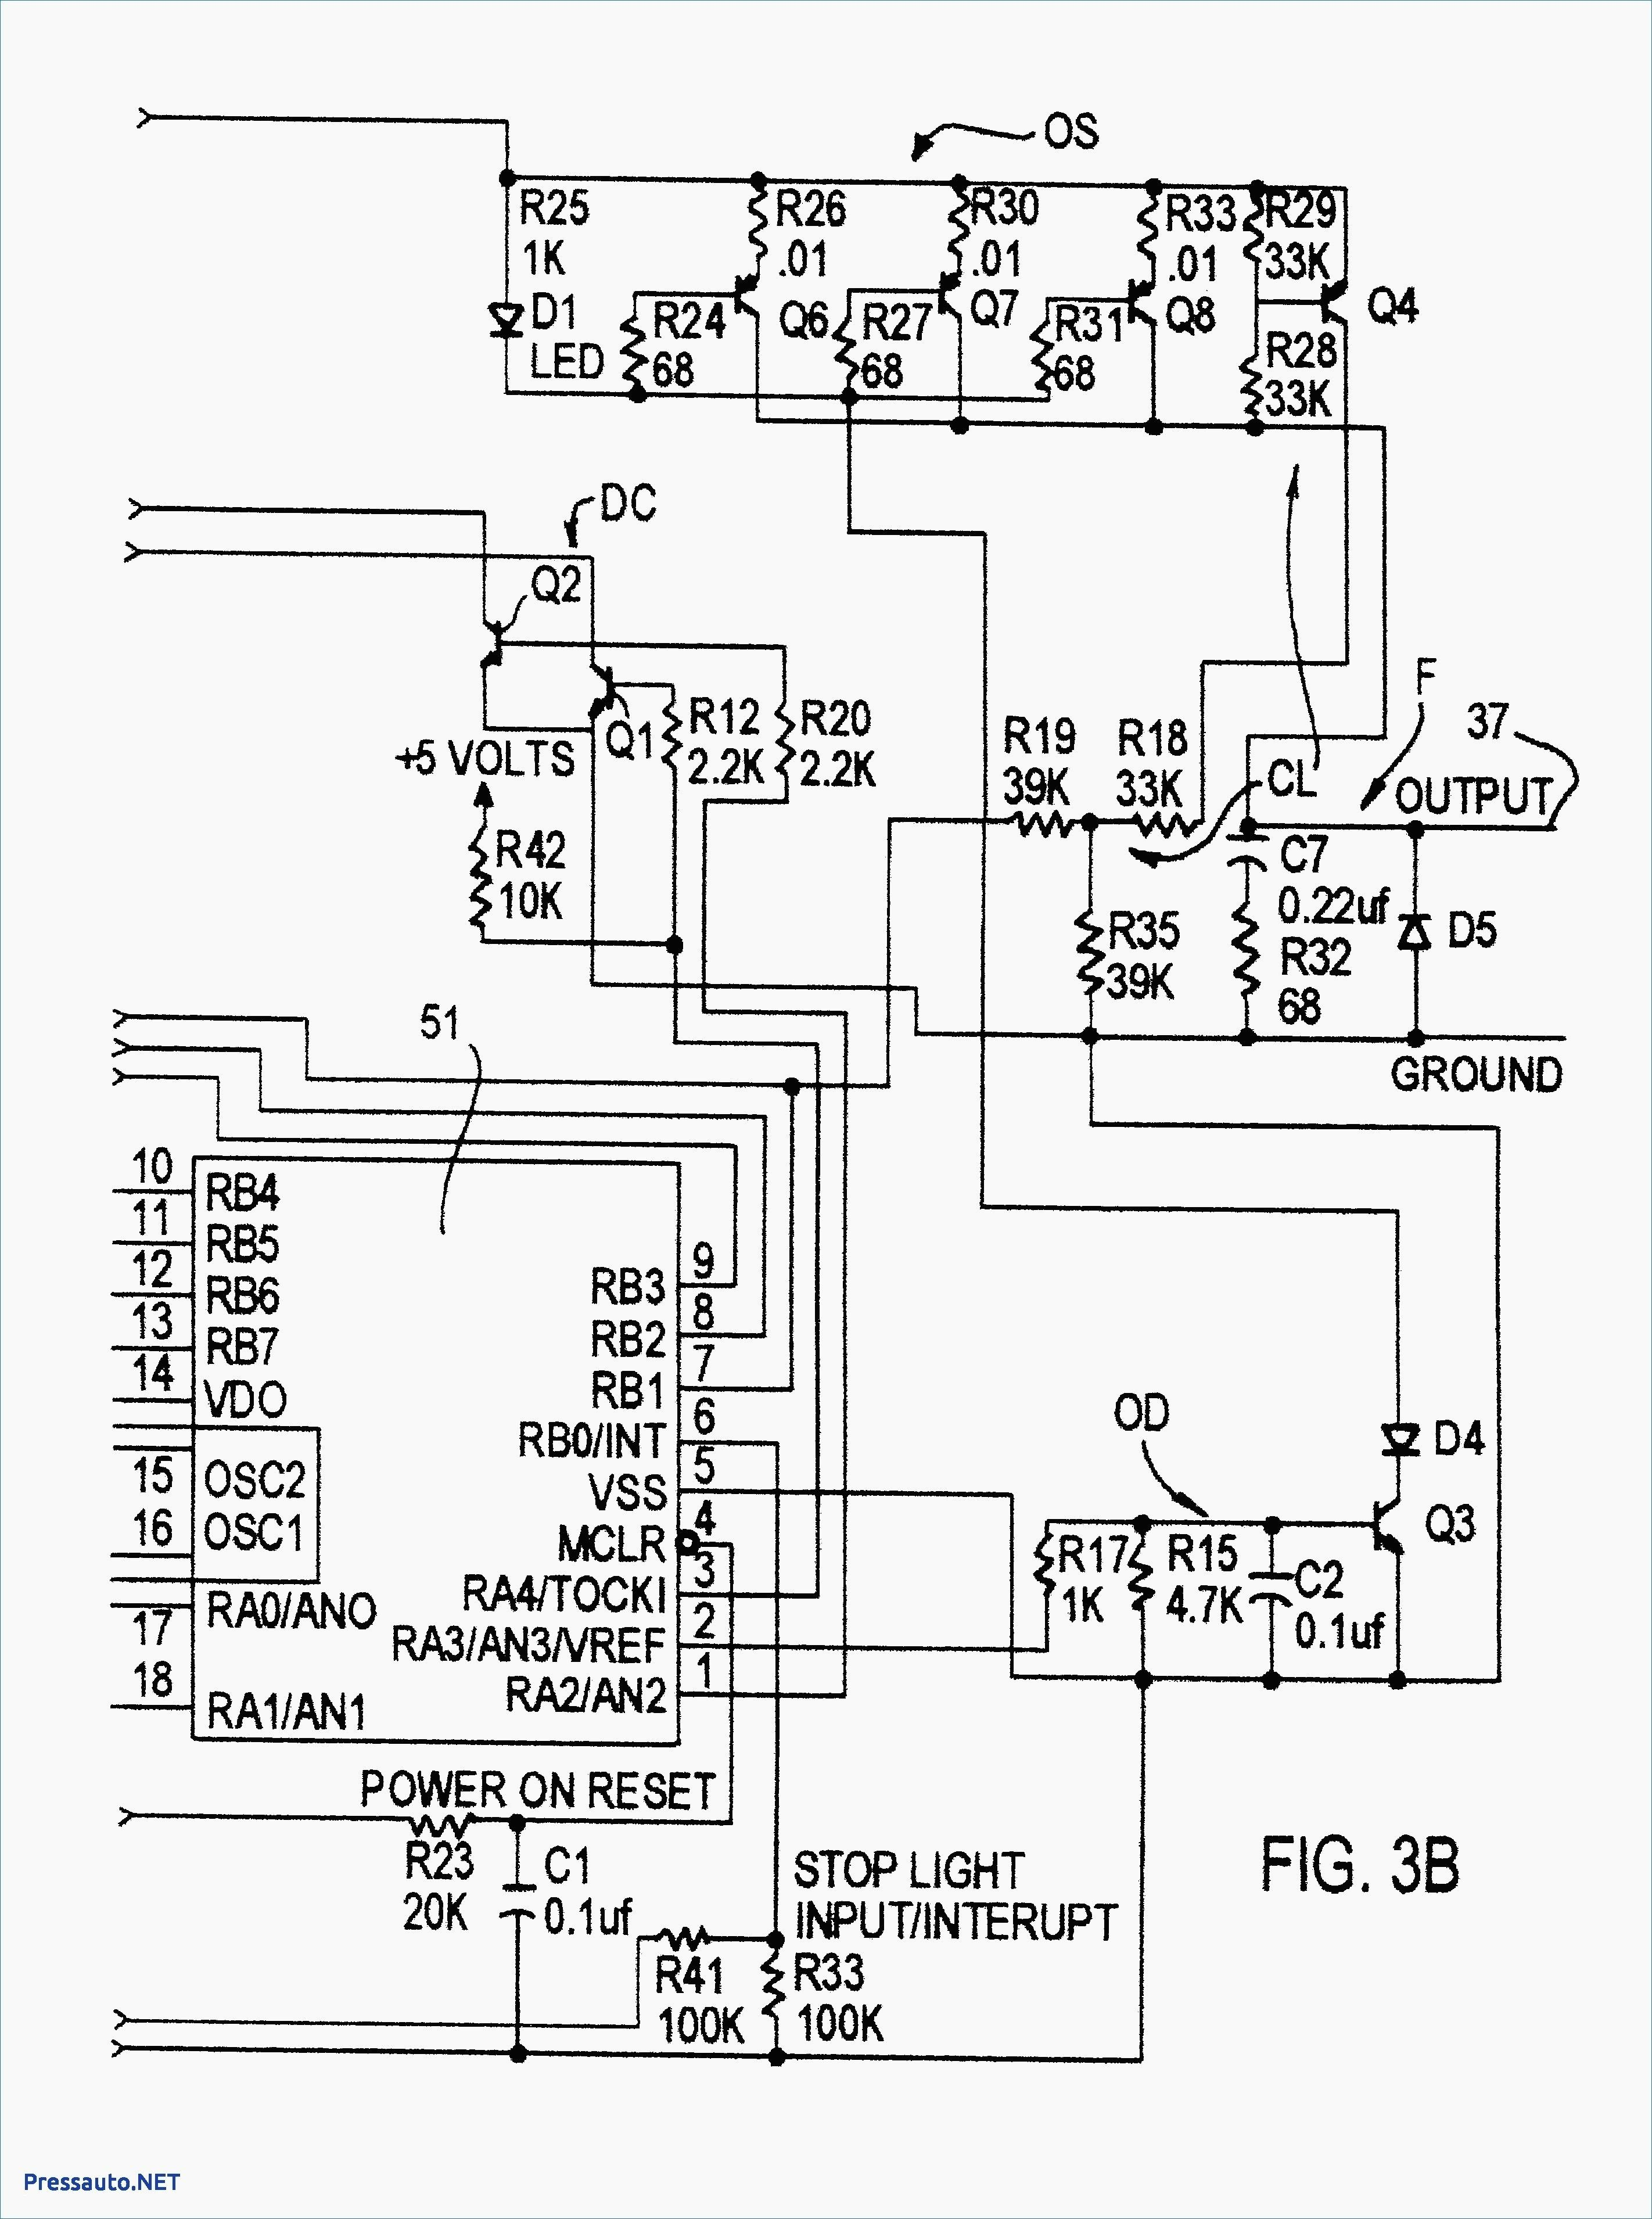 19 Stunning Free Auto Wiring Diagrams For You Https Bacamajalah Com 19 Stunning Free Auto Wiring Diagram Diagram 3 Way Switch Wiring Trailer Wiring Diagram